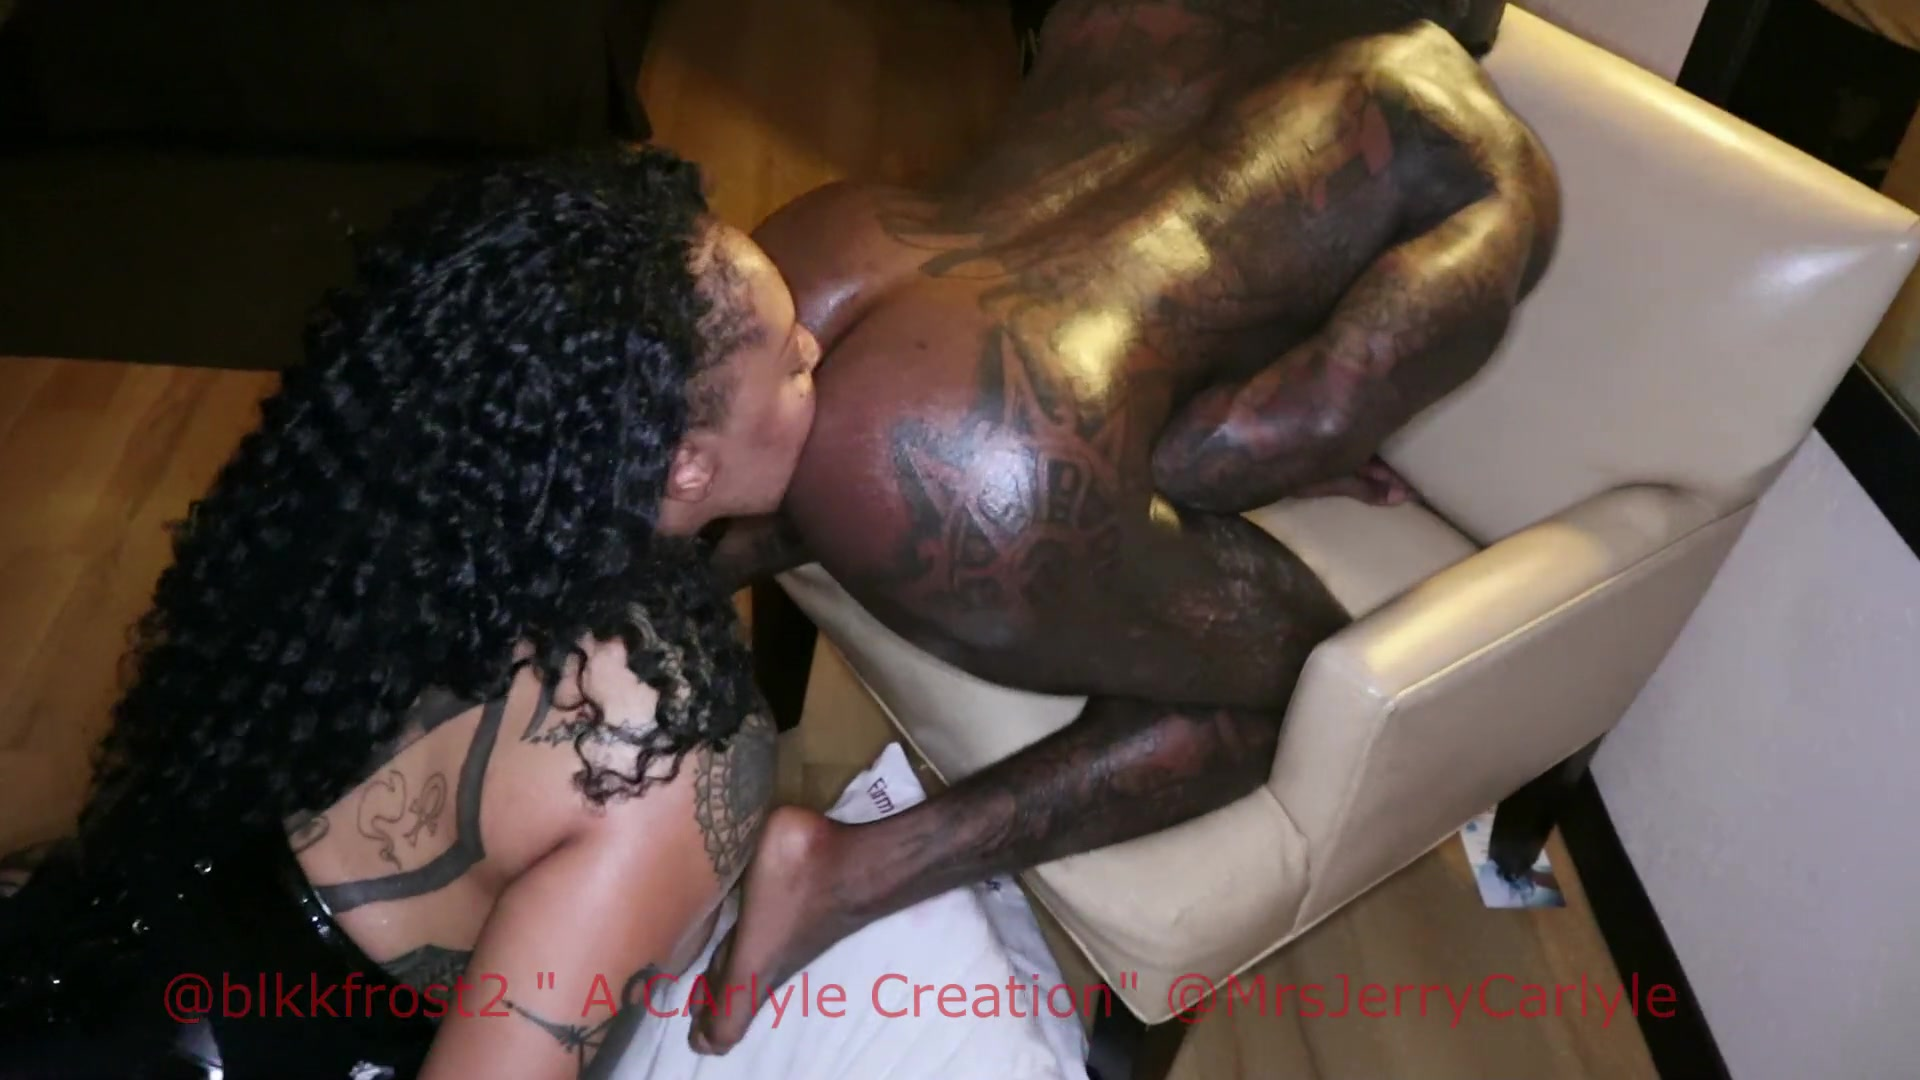 Black Guy Gets Ass Licked